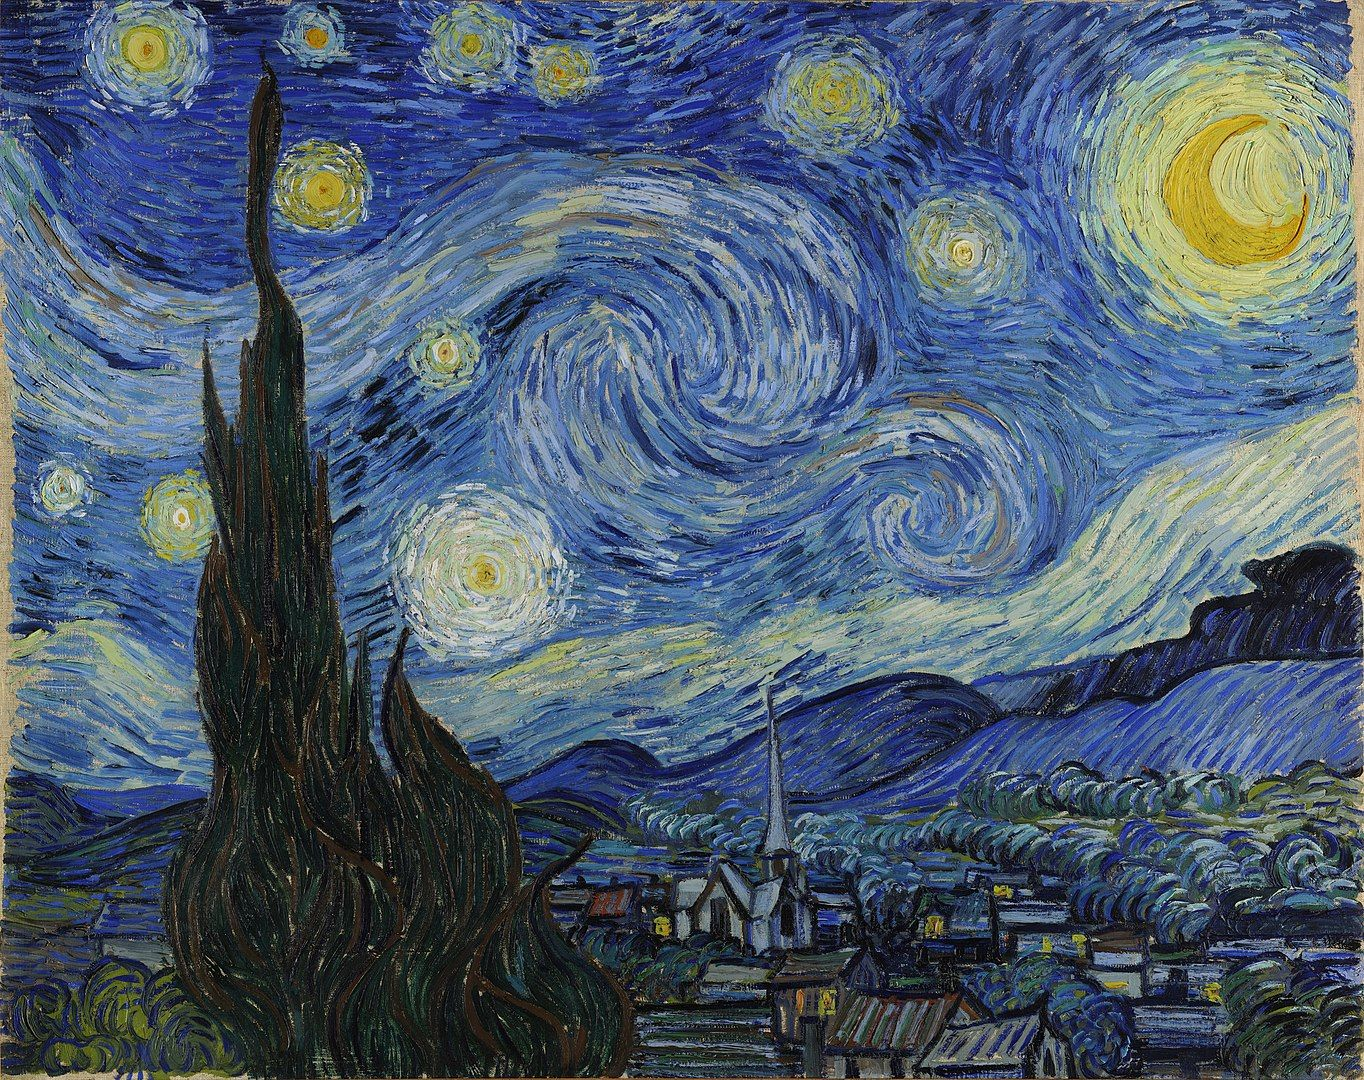 12 destinations from famous paintings you can visit in real life